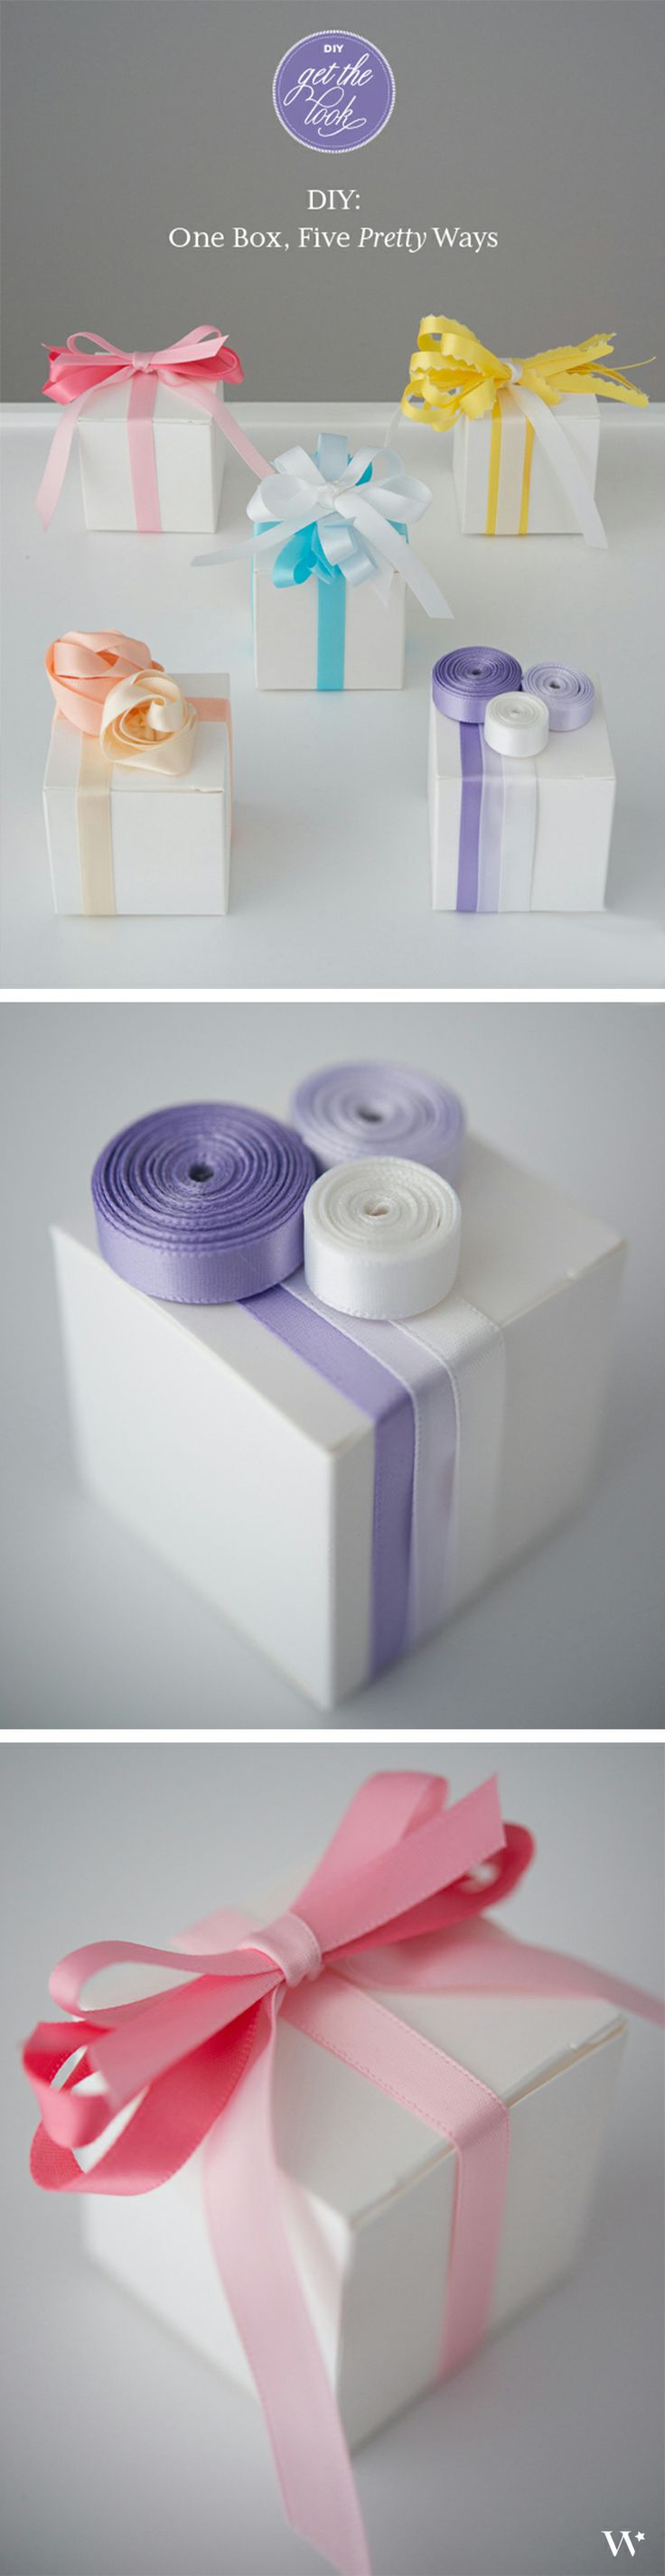 1 Box: 5 Pretty Ways. See the full tutorials to transform your wedding favors with DIY details here: http://blog.weddingstar.com/diy-wedding-wednesday-white-box-satin-ribbon-endless-possibilities/